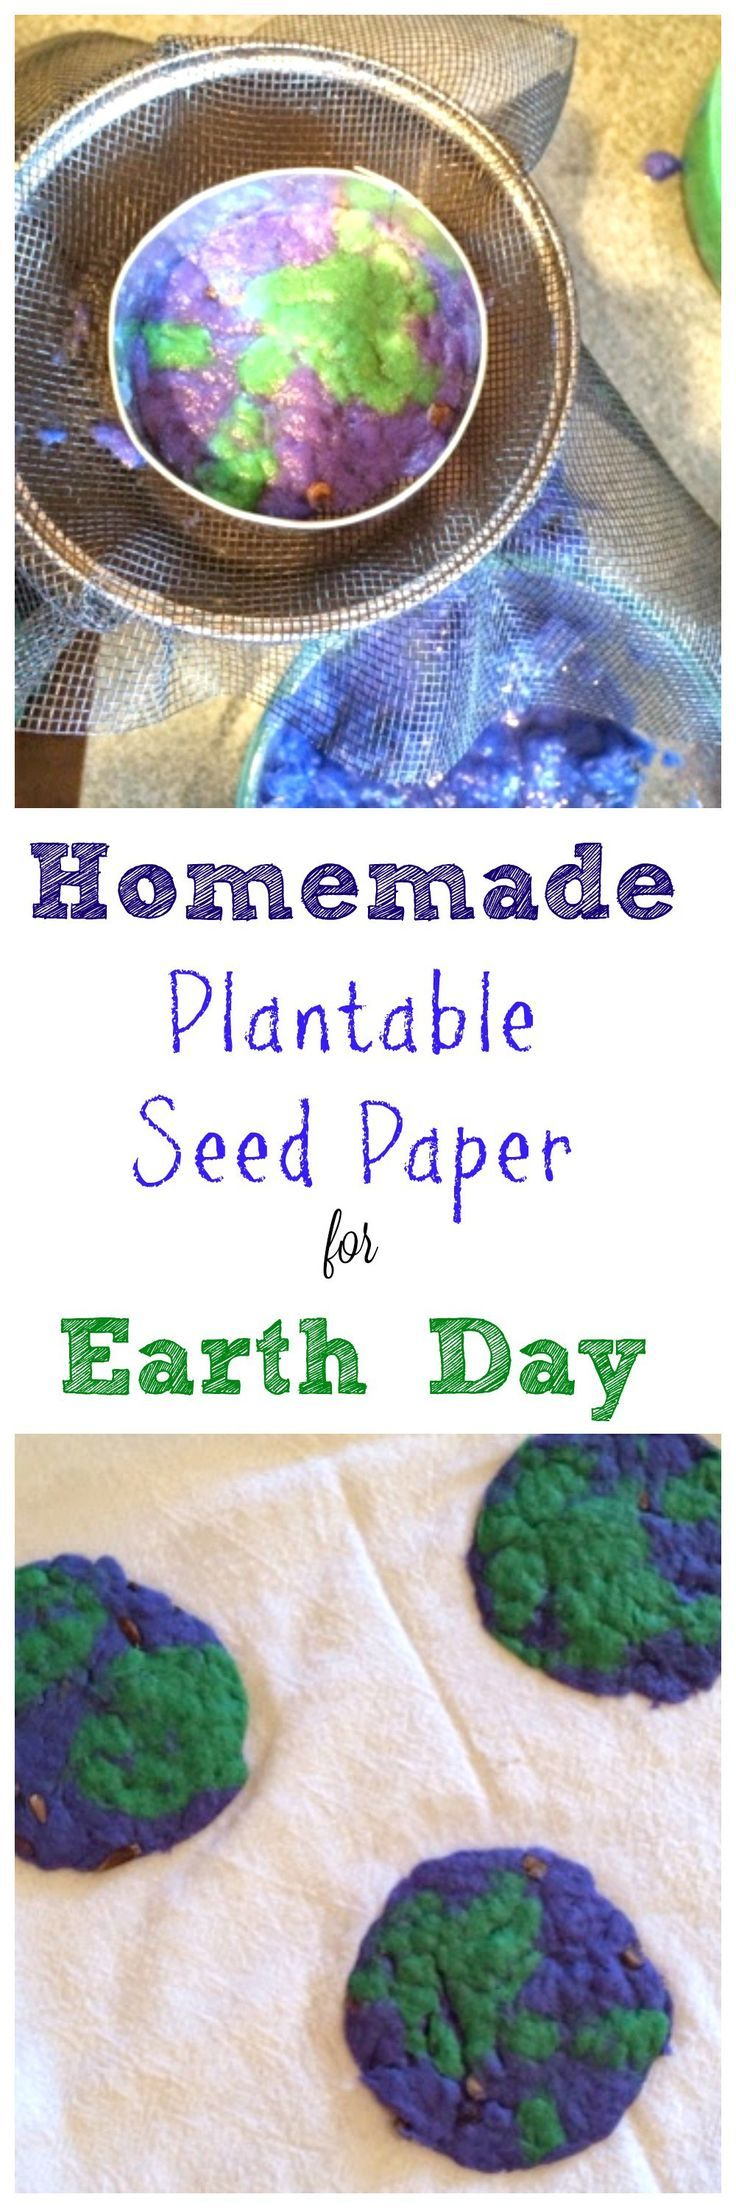 331 best going green images on pinterest earth day activities